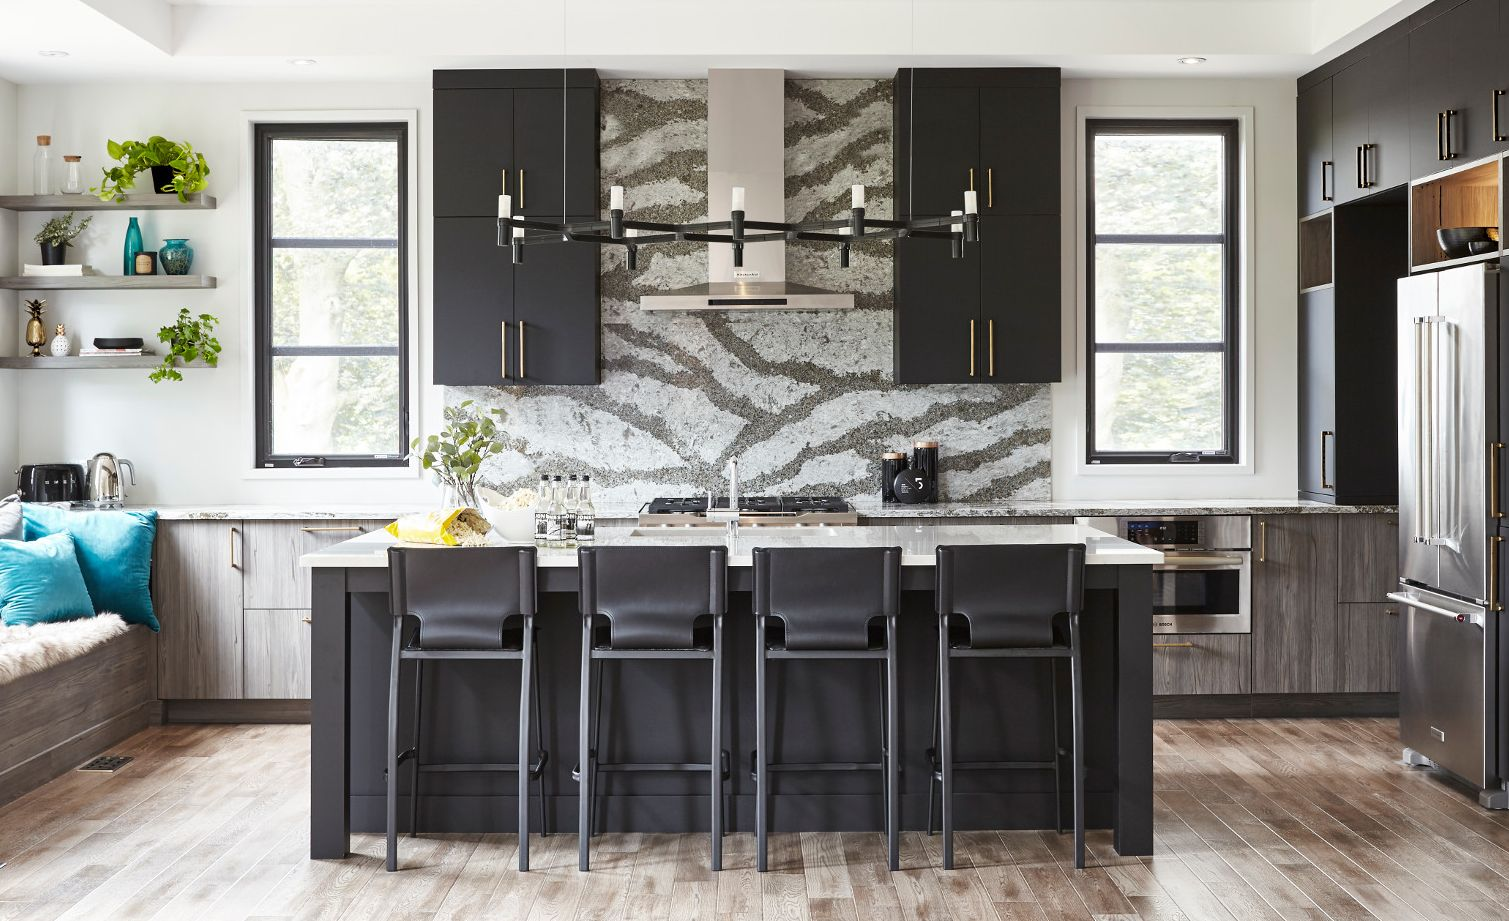 Bold kitchen design featuring Galloway™ backsplash.